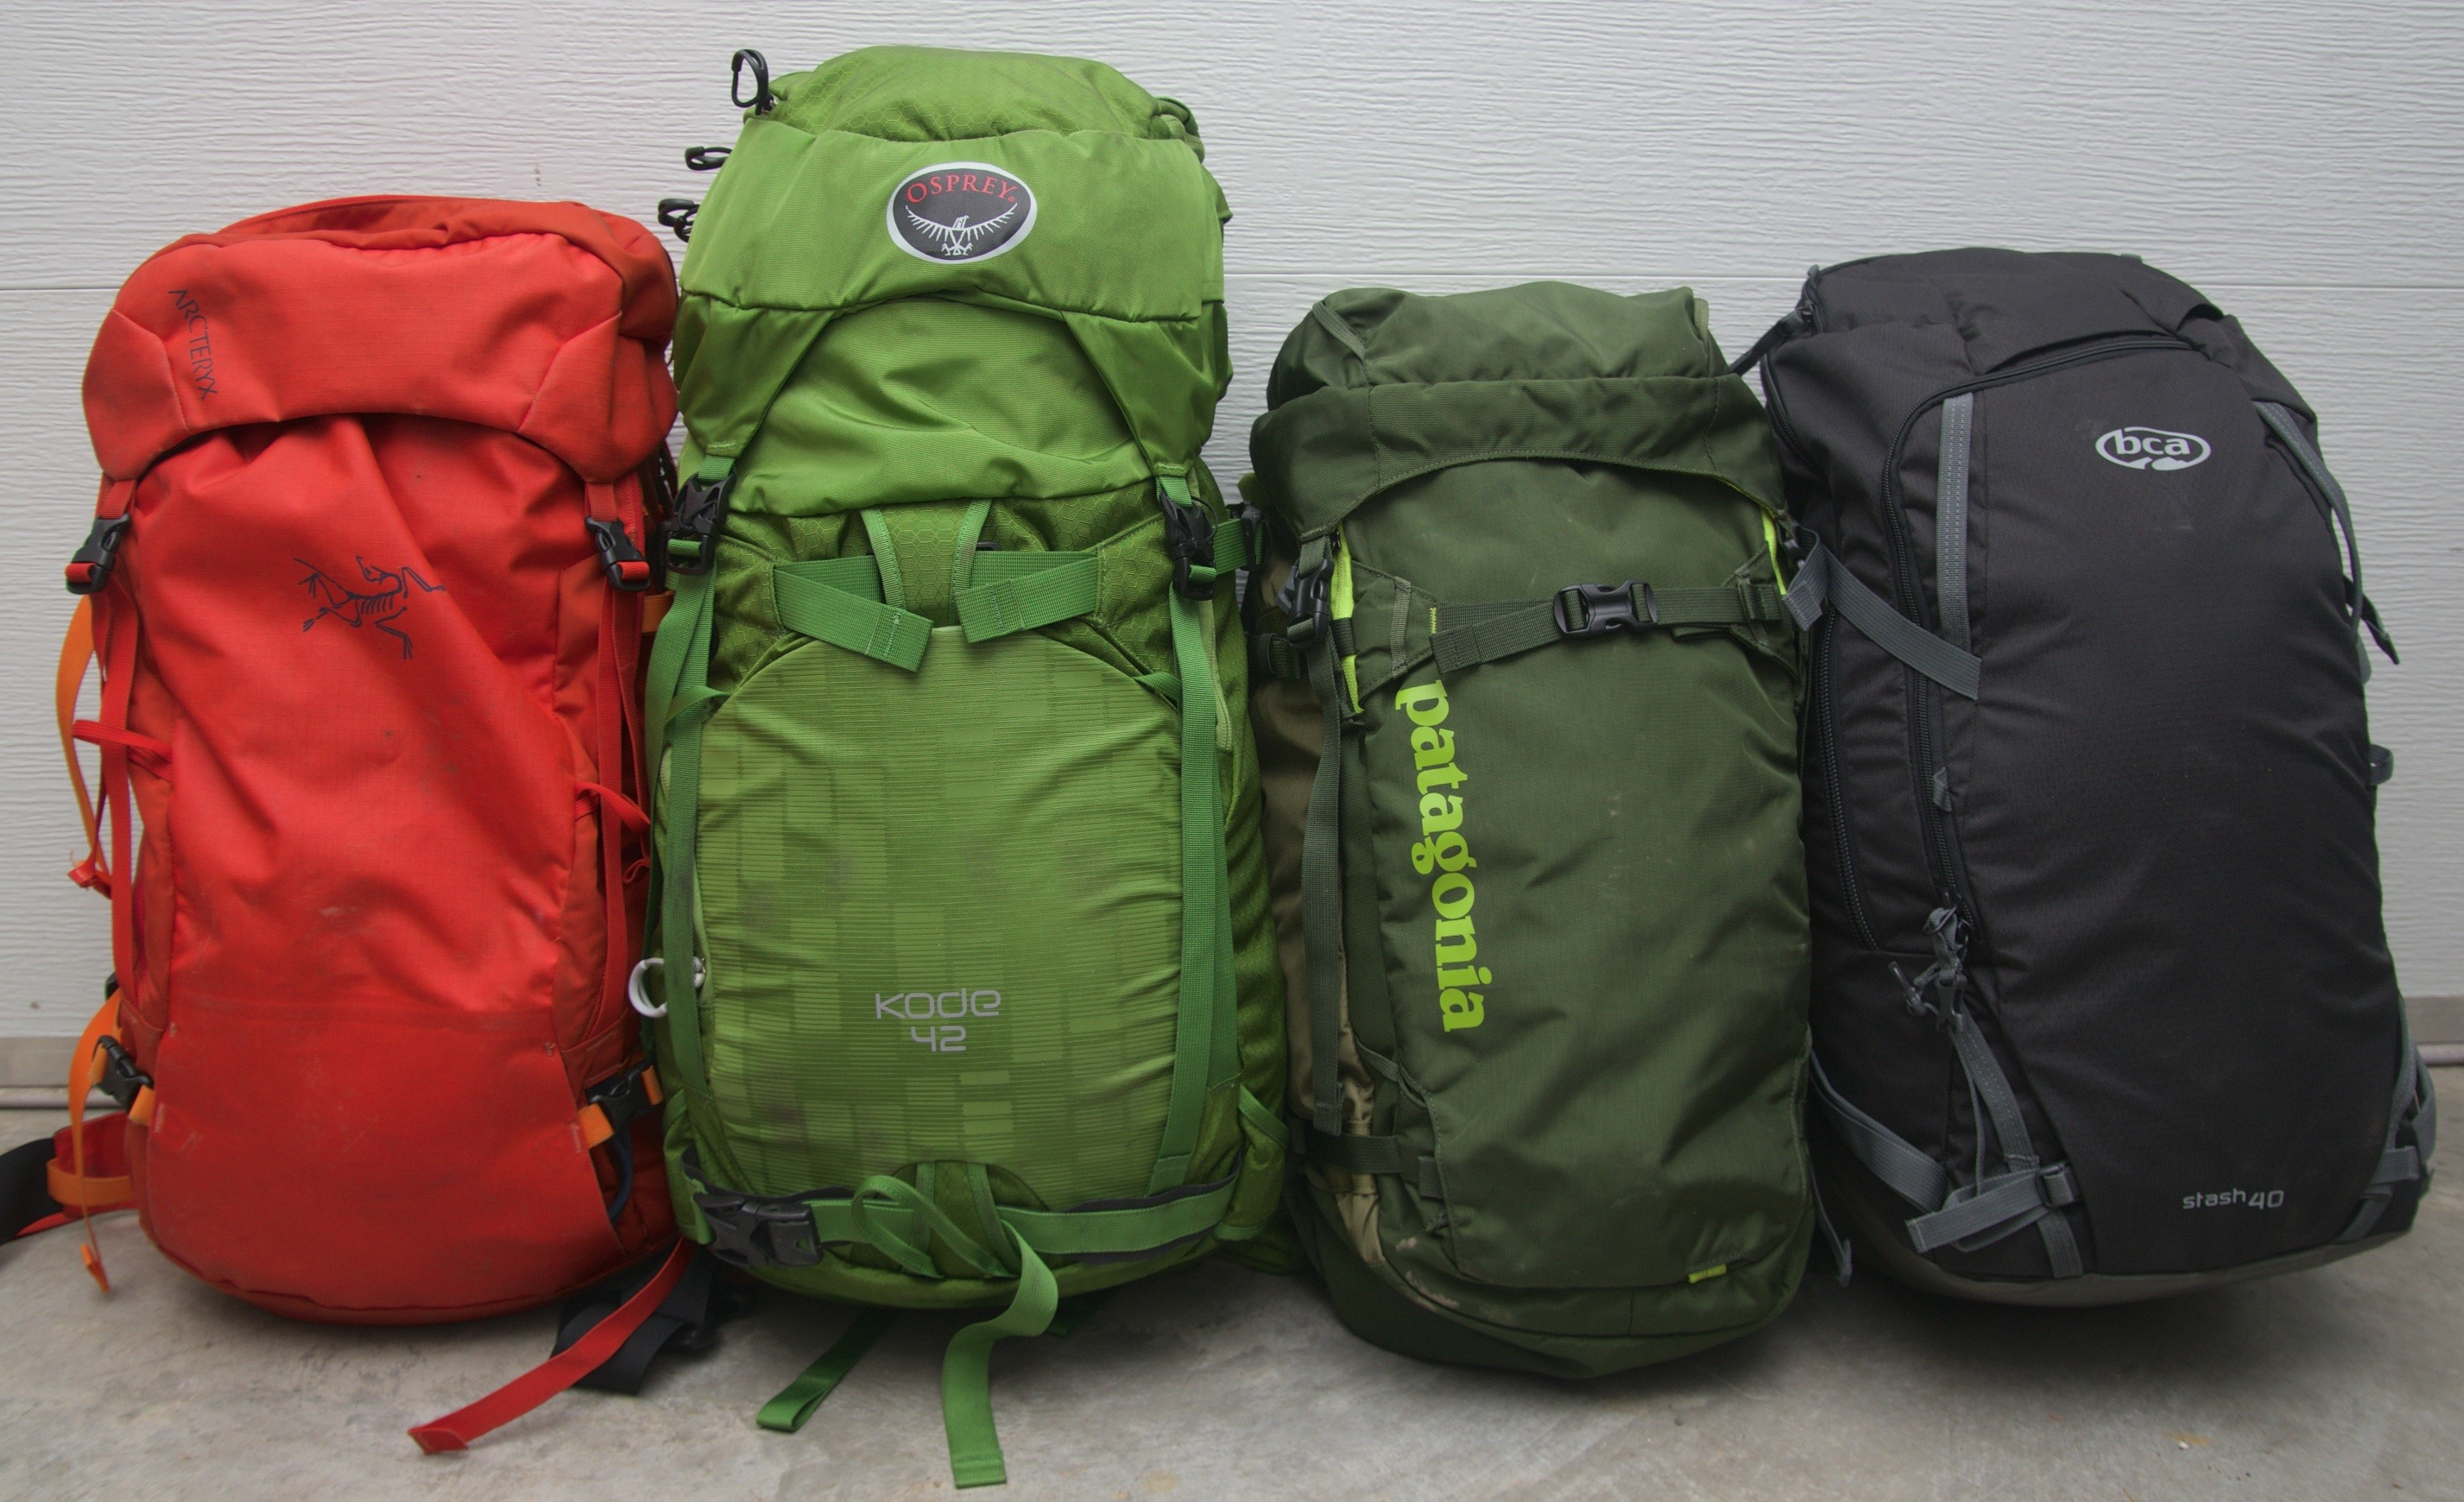 Comparison Review: Mid-size Ski Packs